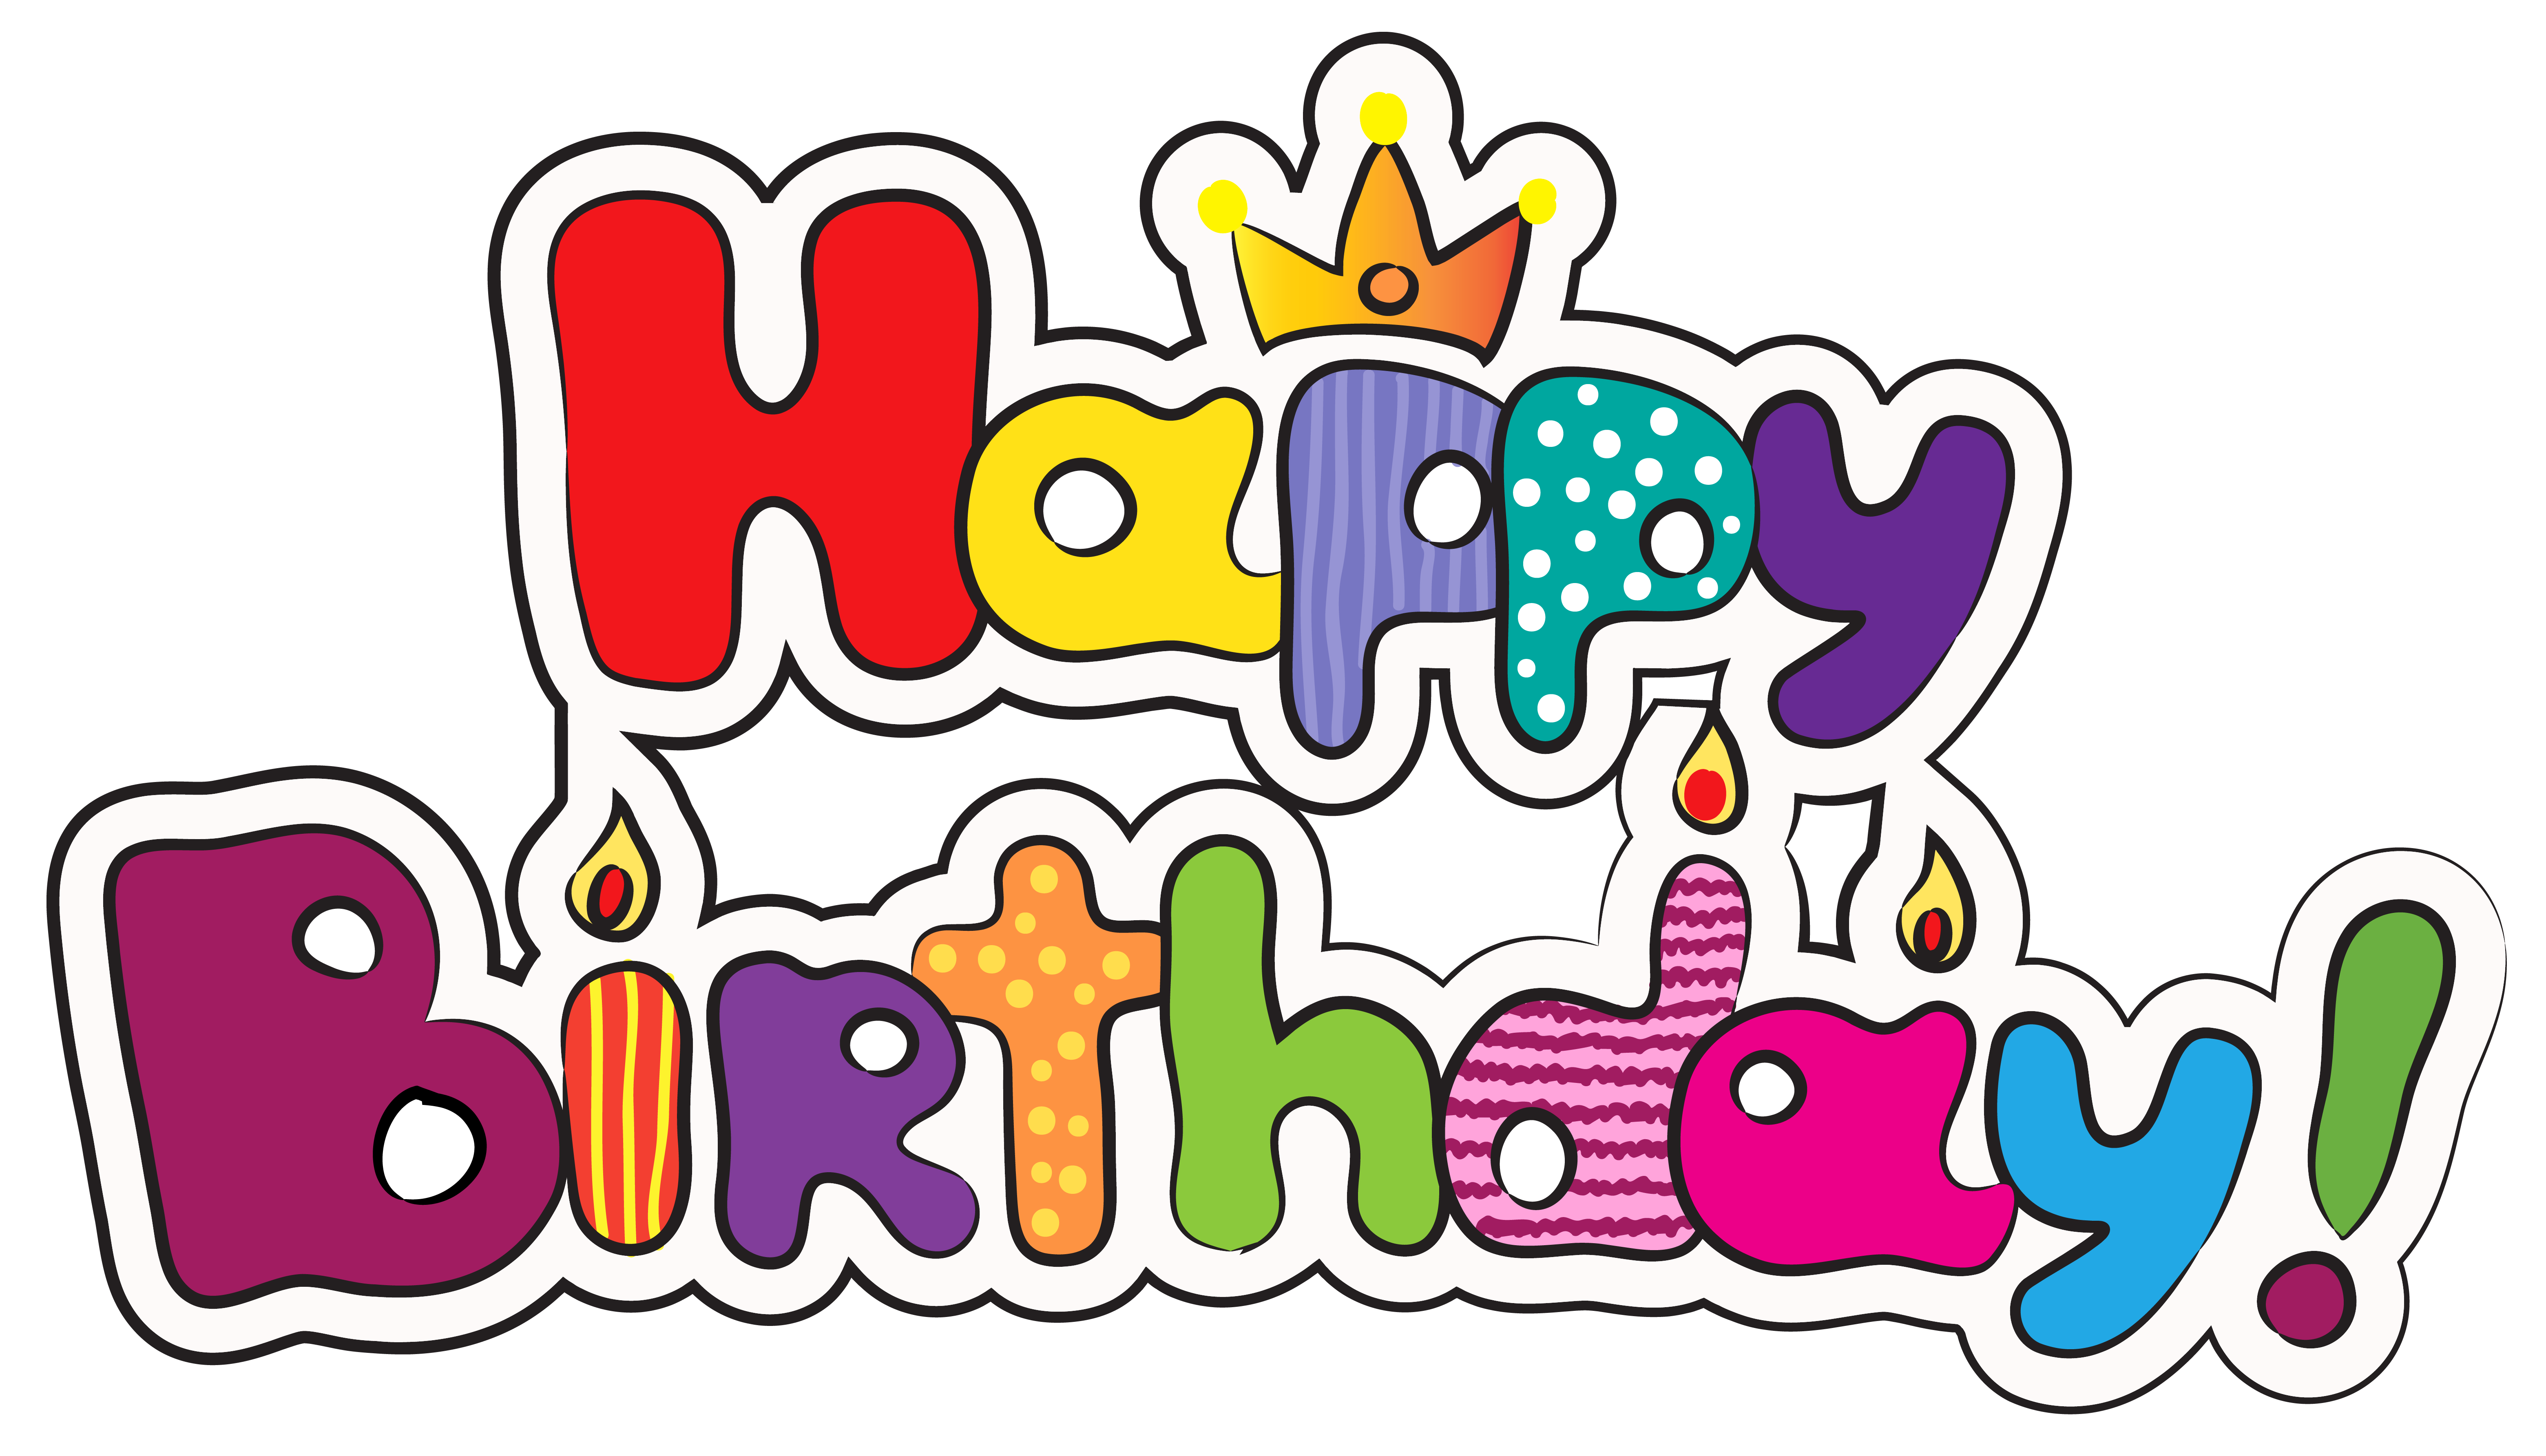 jpg black and white Happy birthday clipart for facebook. Cake clip art colorful